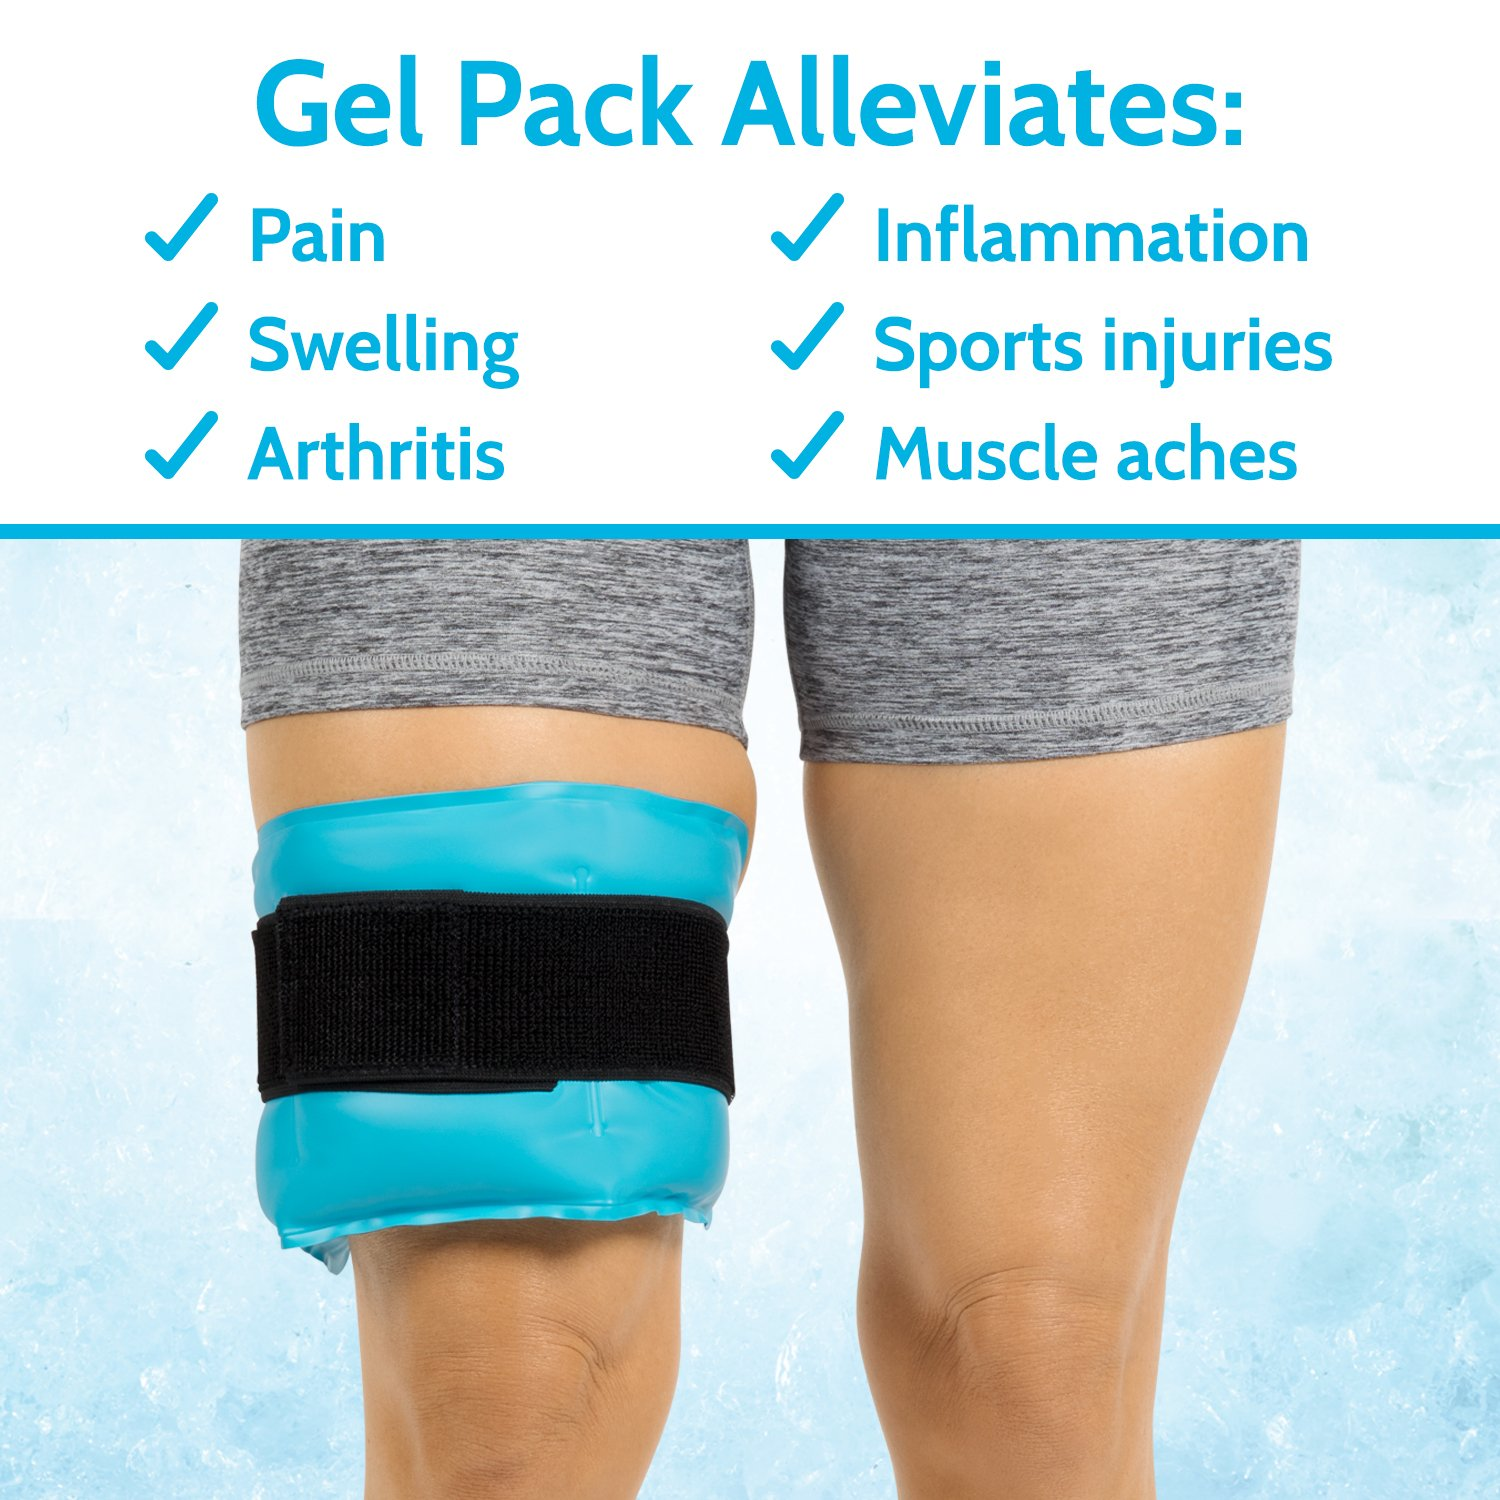 Arctic Flex Hot Cold Therapy Wrap - Reusable Gel Ice and Heat Compress Pack with Strap for Muscle, Injuries, Back, Neck Aches, Knee, Ankle, Calves, Elbow Pain Relief - Microwaveable Blue Pad, Flexible by Arctic Flex (Image #8)